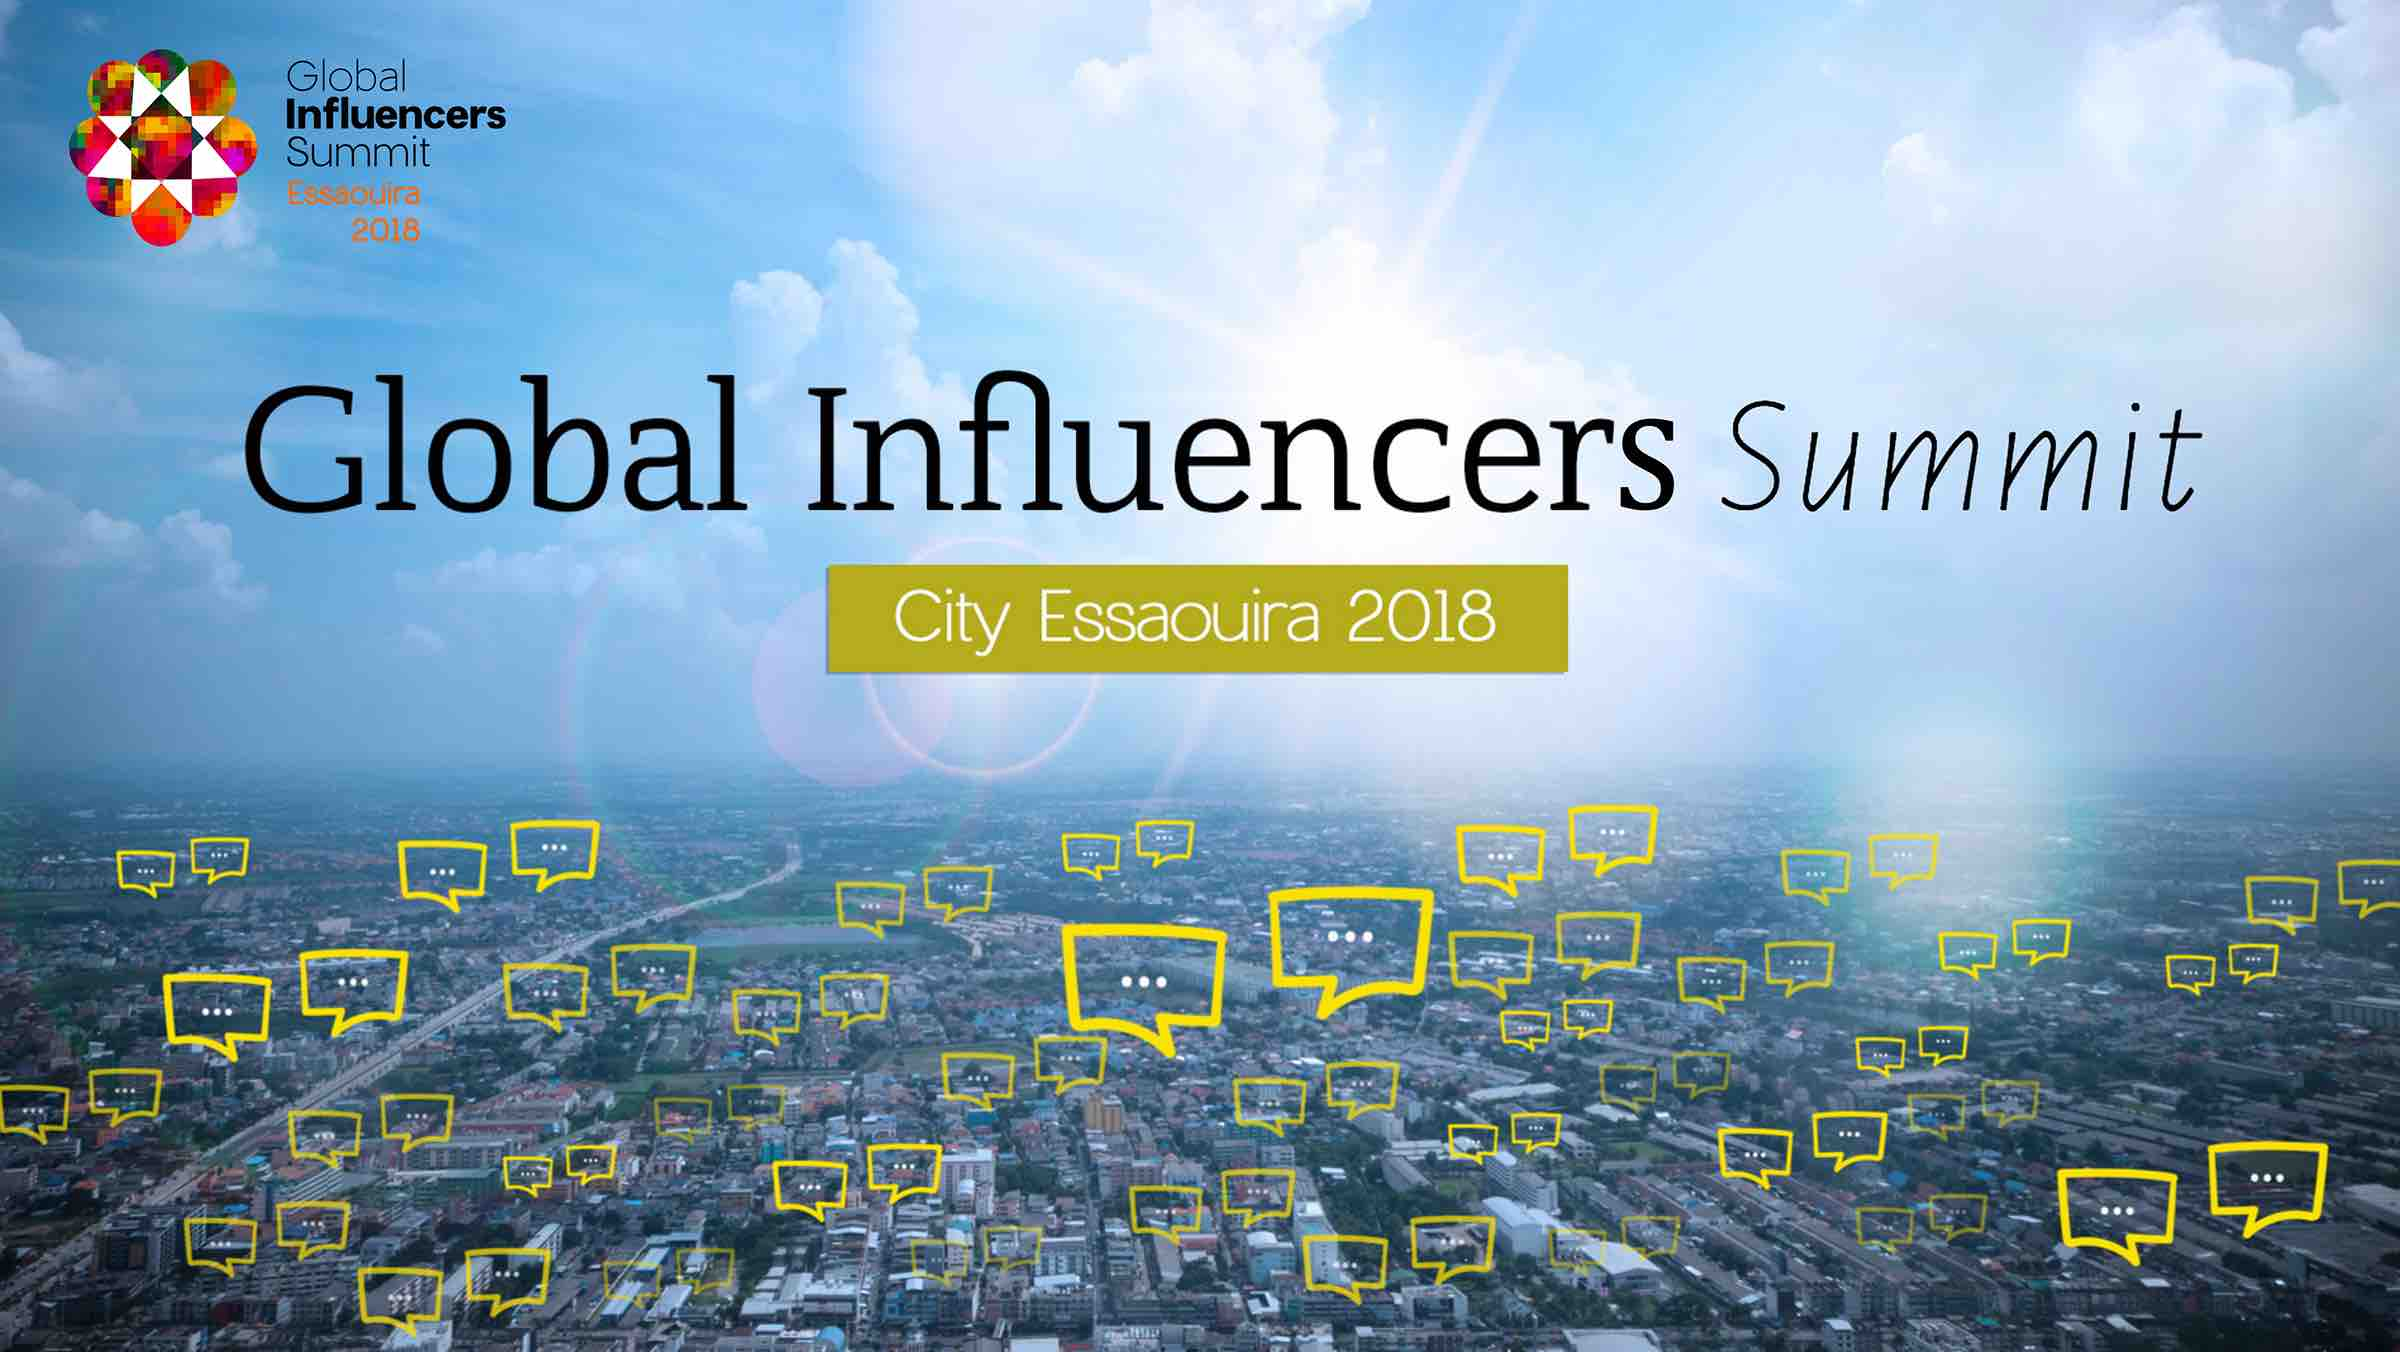 Global Influencers Summit 2018